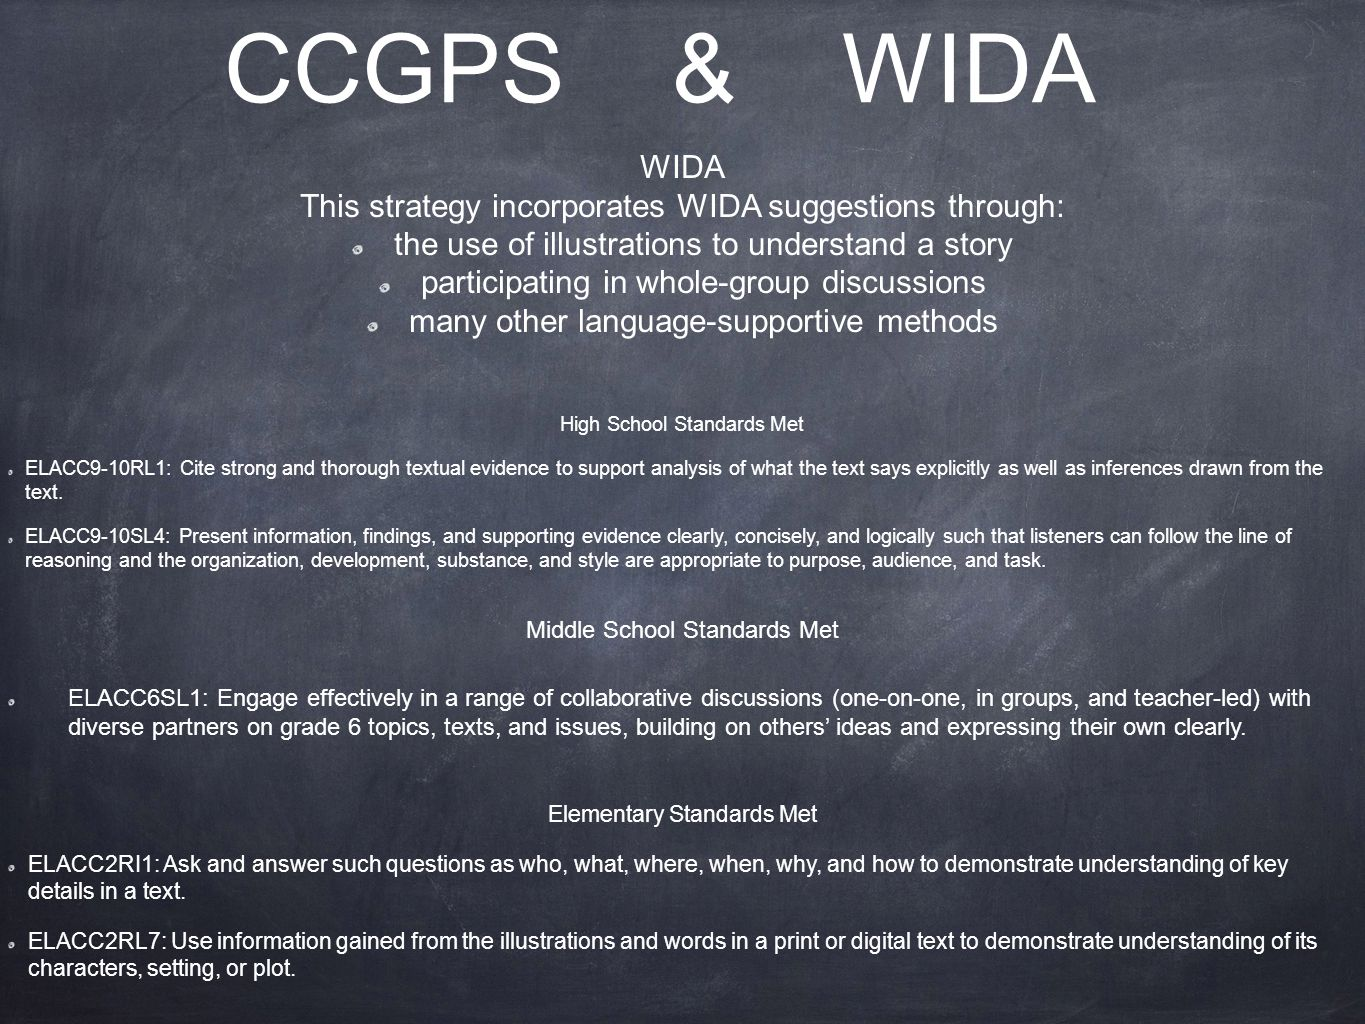 CCGPS & WIDA WIDA This strategy incorporates WIDA suggestions through: